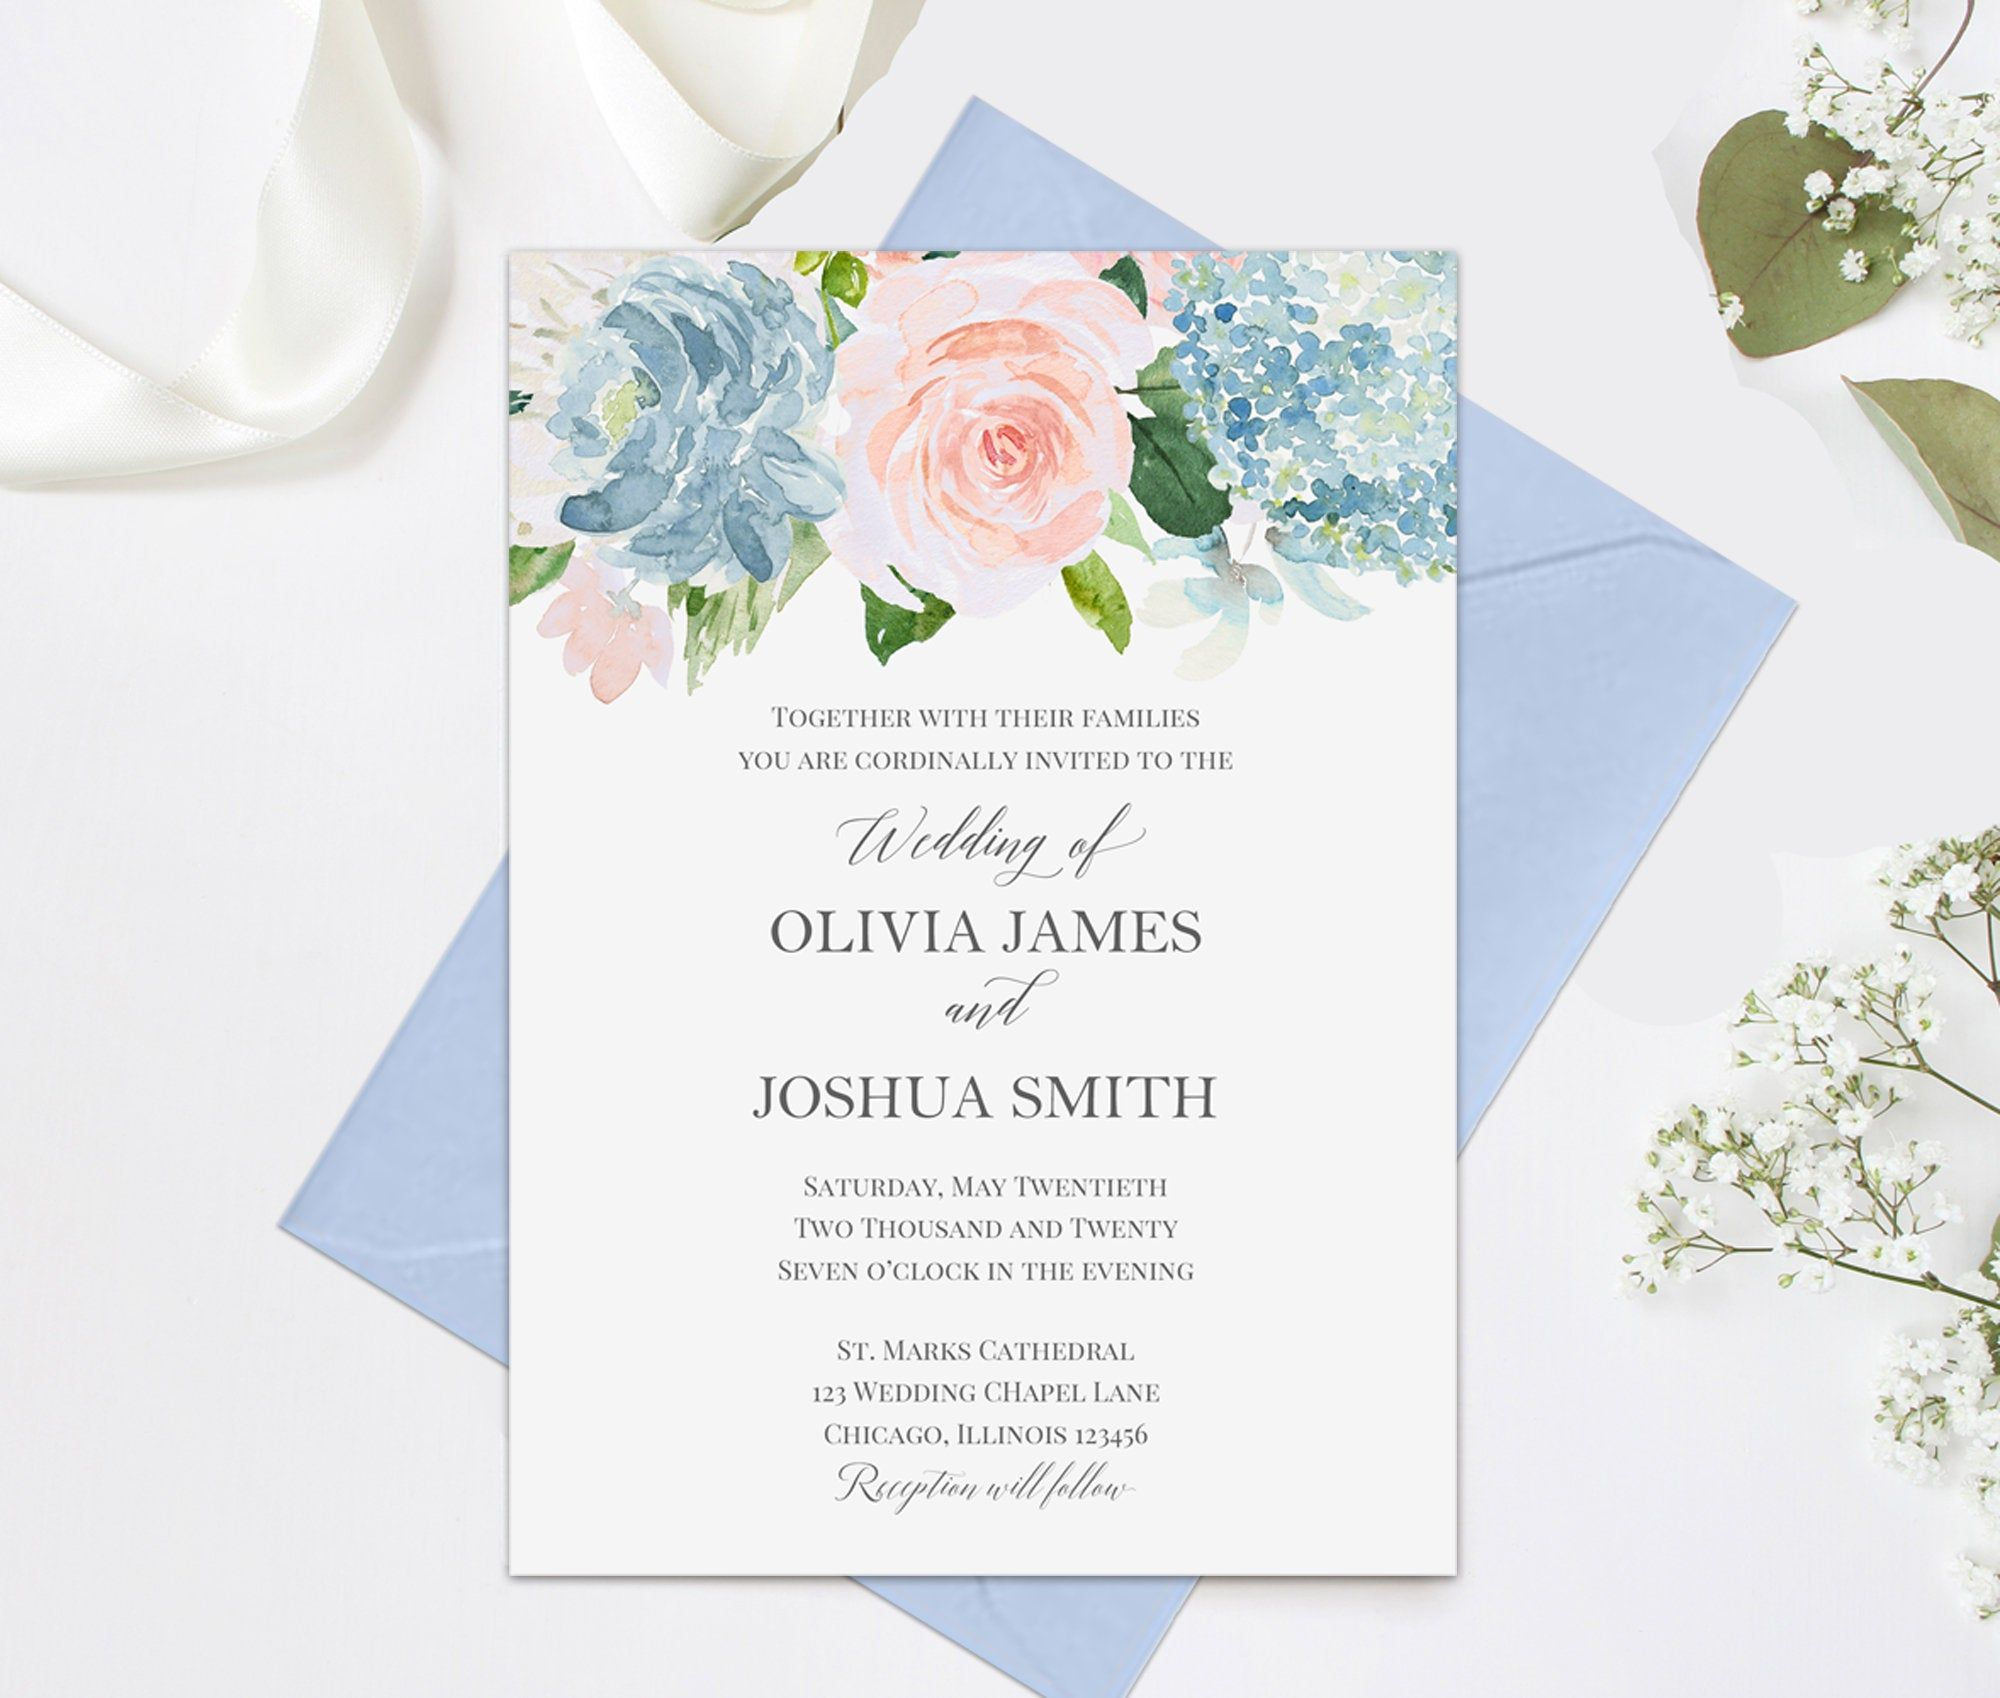 Blue and Blush Blooms Wedding Invitations Suite Engagement Party Couples Shower Rehearsal - Blue and Blush Blooms Collection #engagementpartyideasdecorations